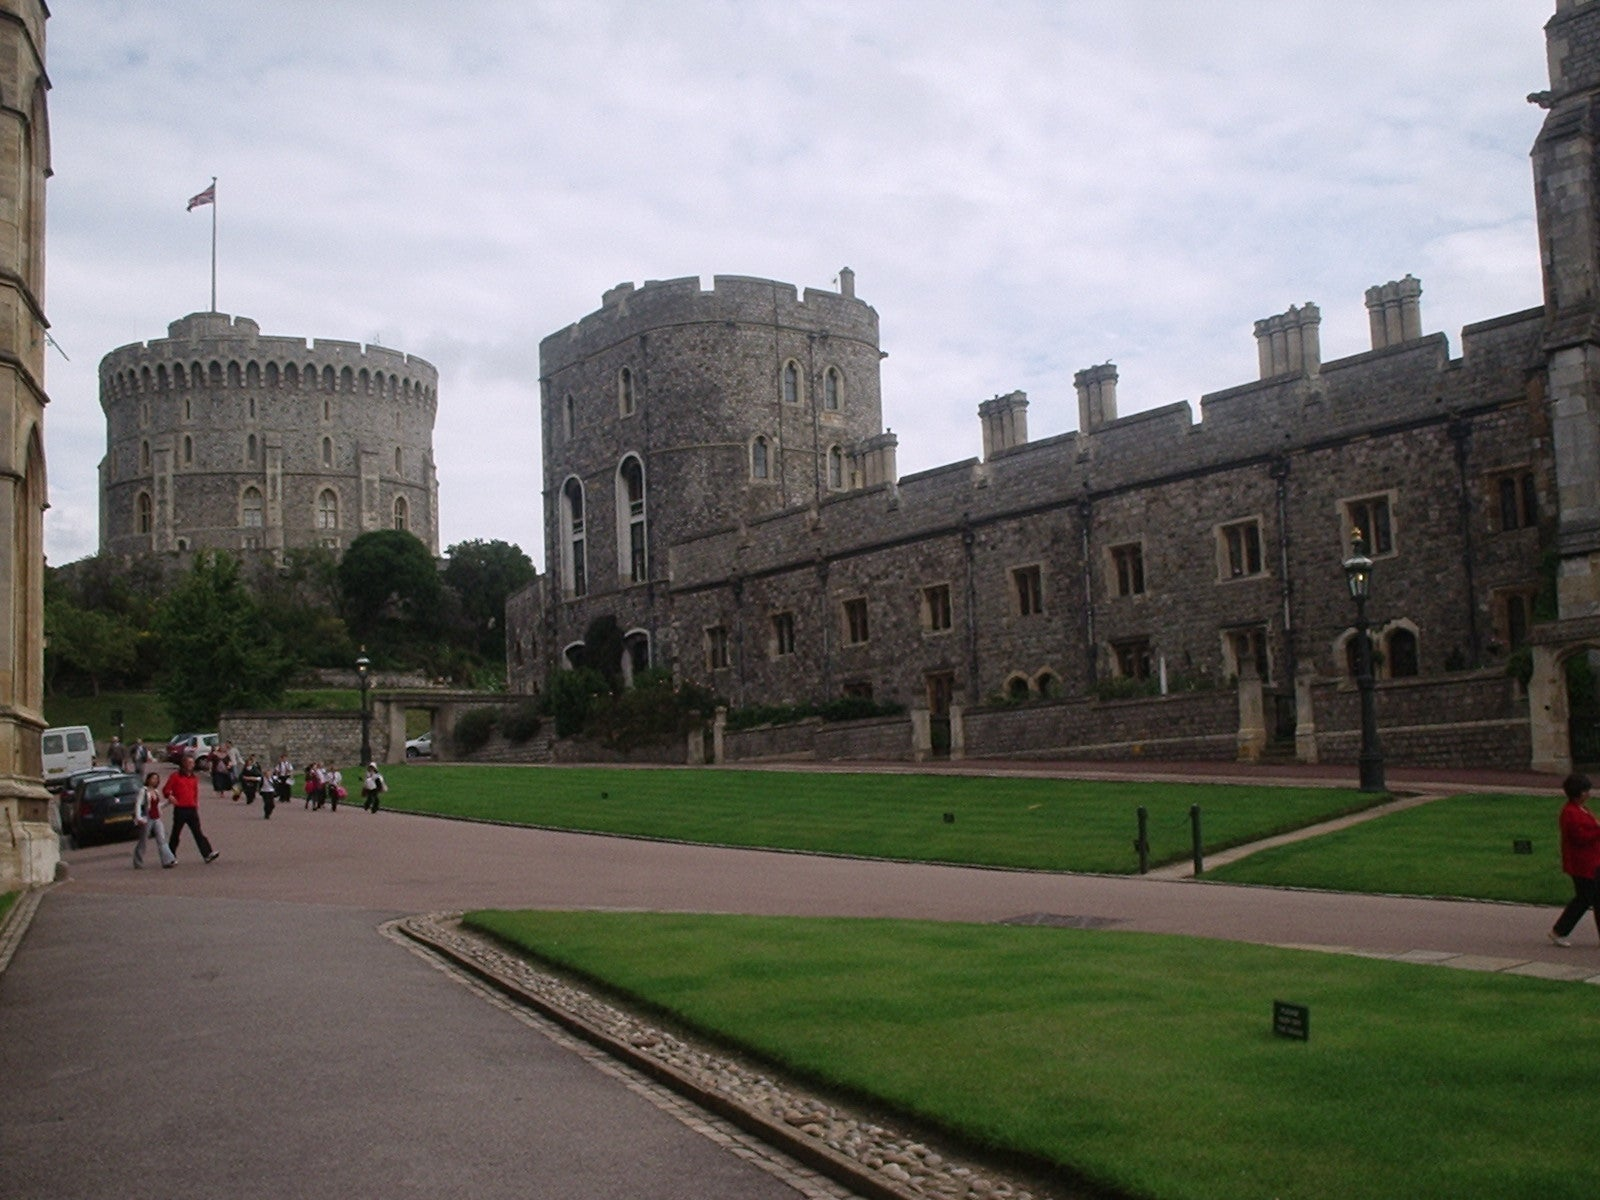 Ciudad en Castillo de Windsor